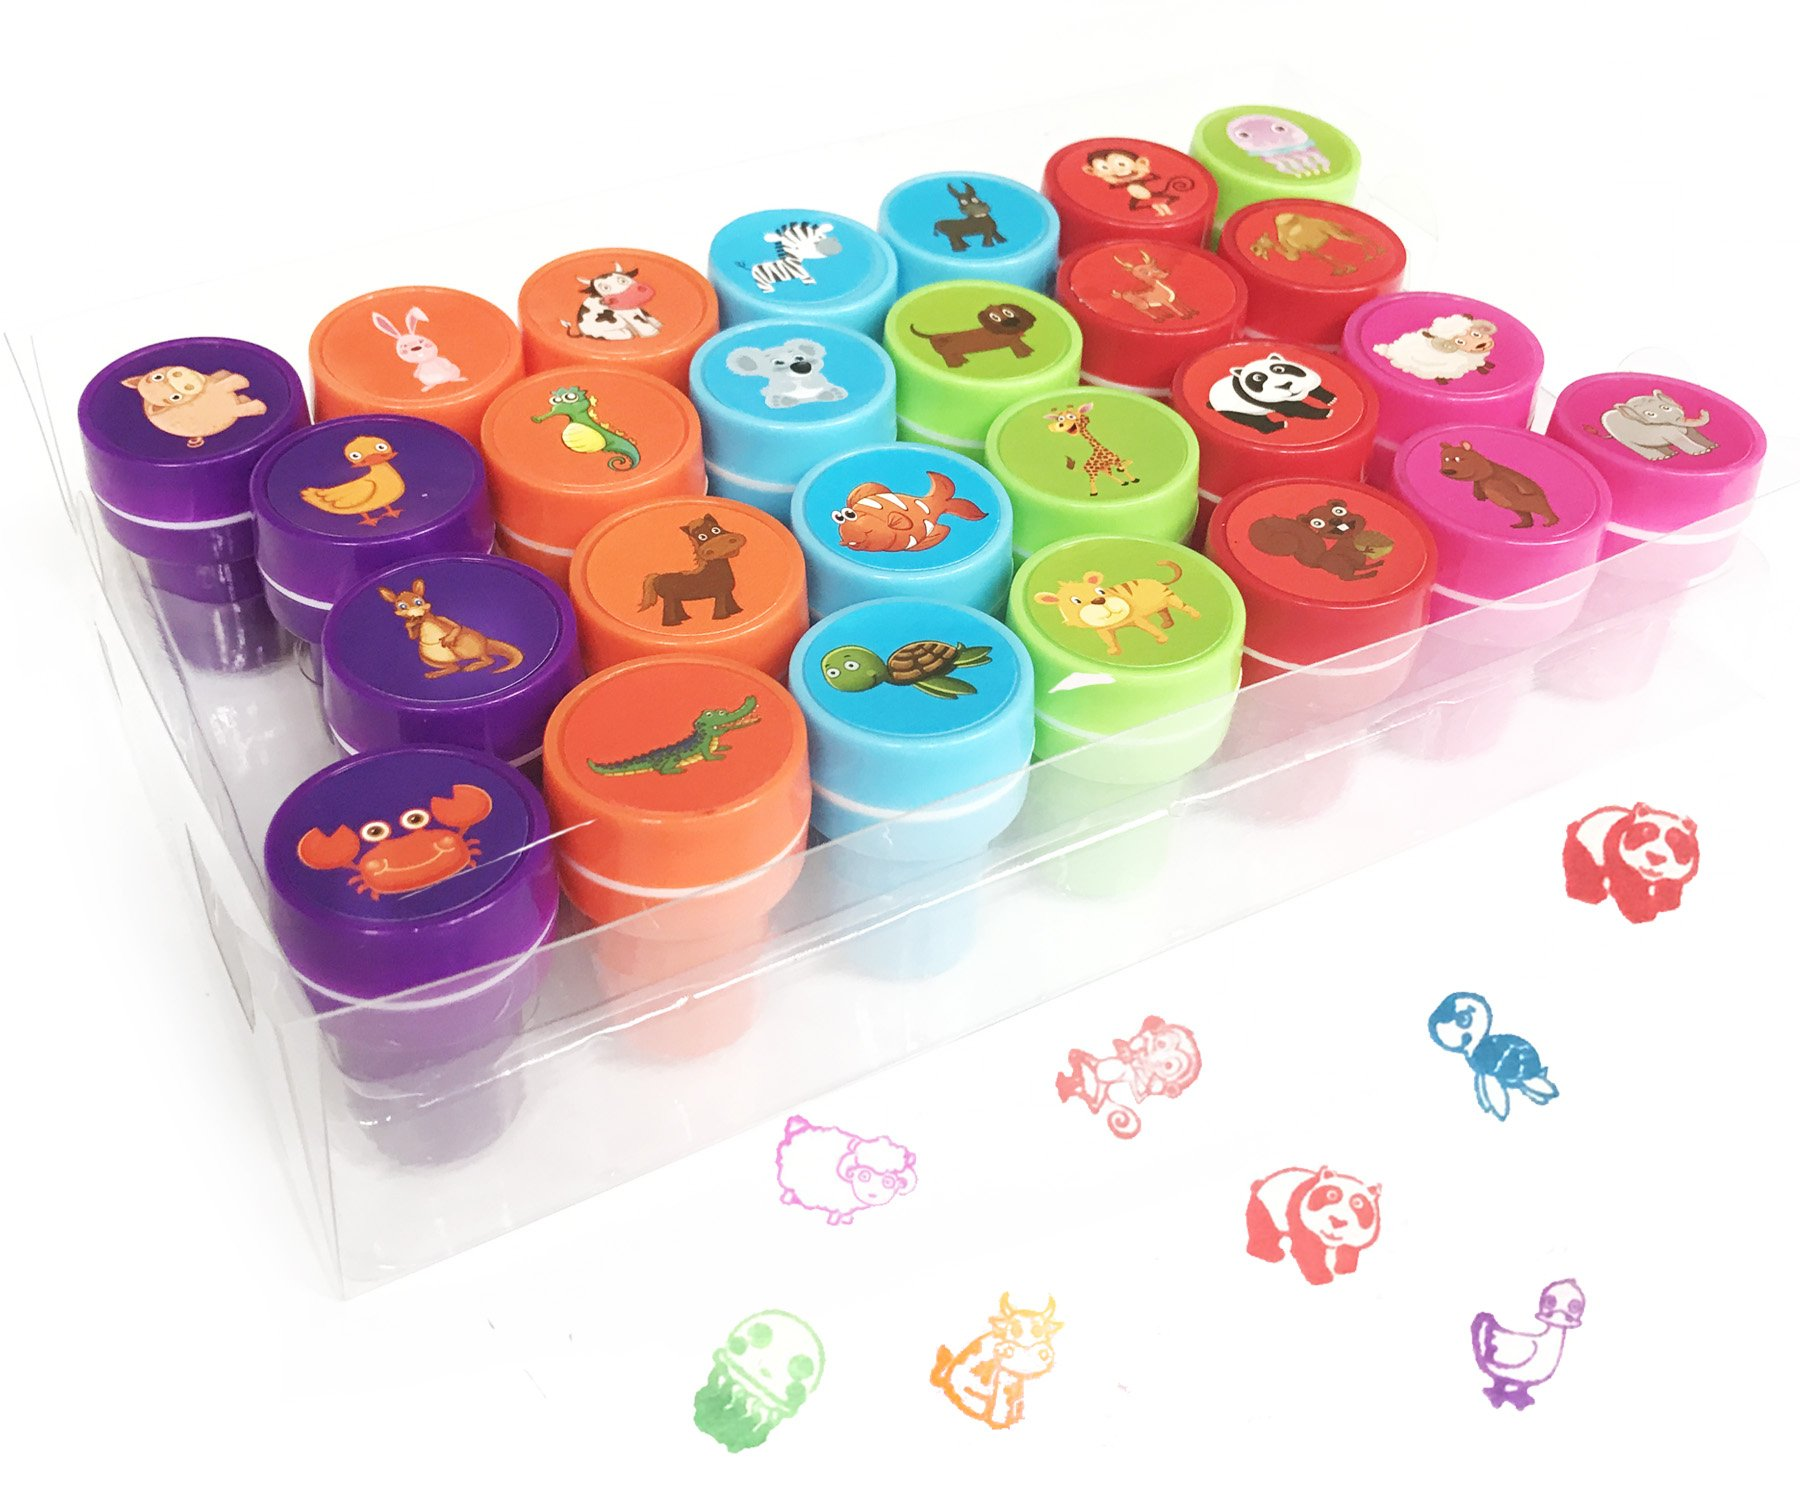 26 Pieces Animals Stamps with 30 Sheet Stickers for Kids,Self-Ink Washable Ink Stampers Set for Children Party Favor,School Prizes,Birthday Gift,Learn Props